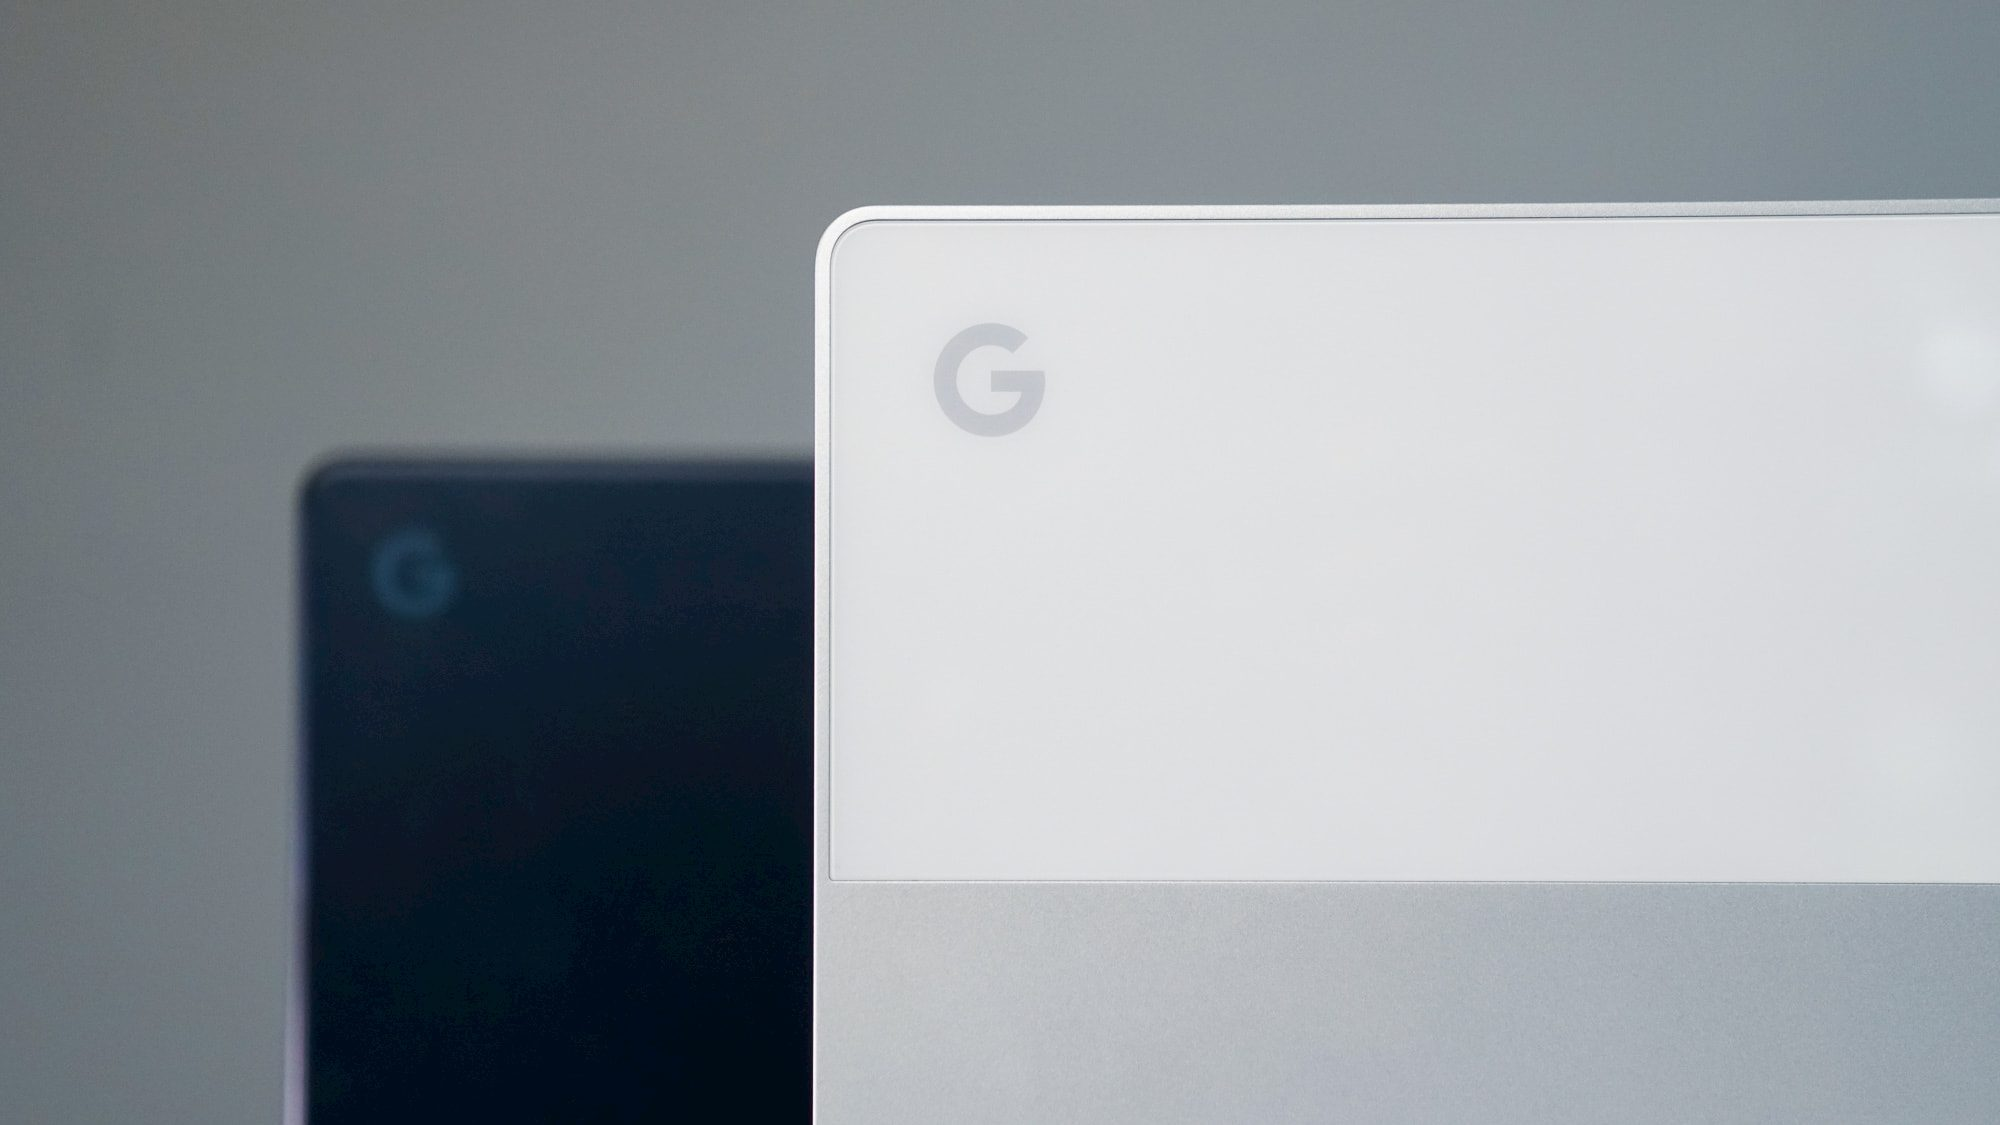 Proof that Google may be making a Pixelbook 2 for 2020 after all